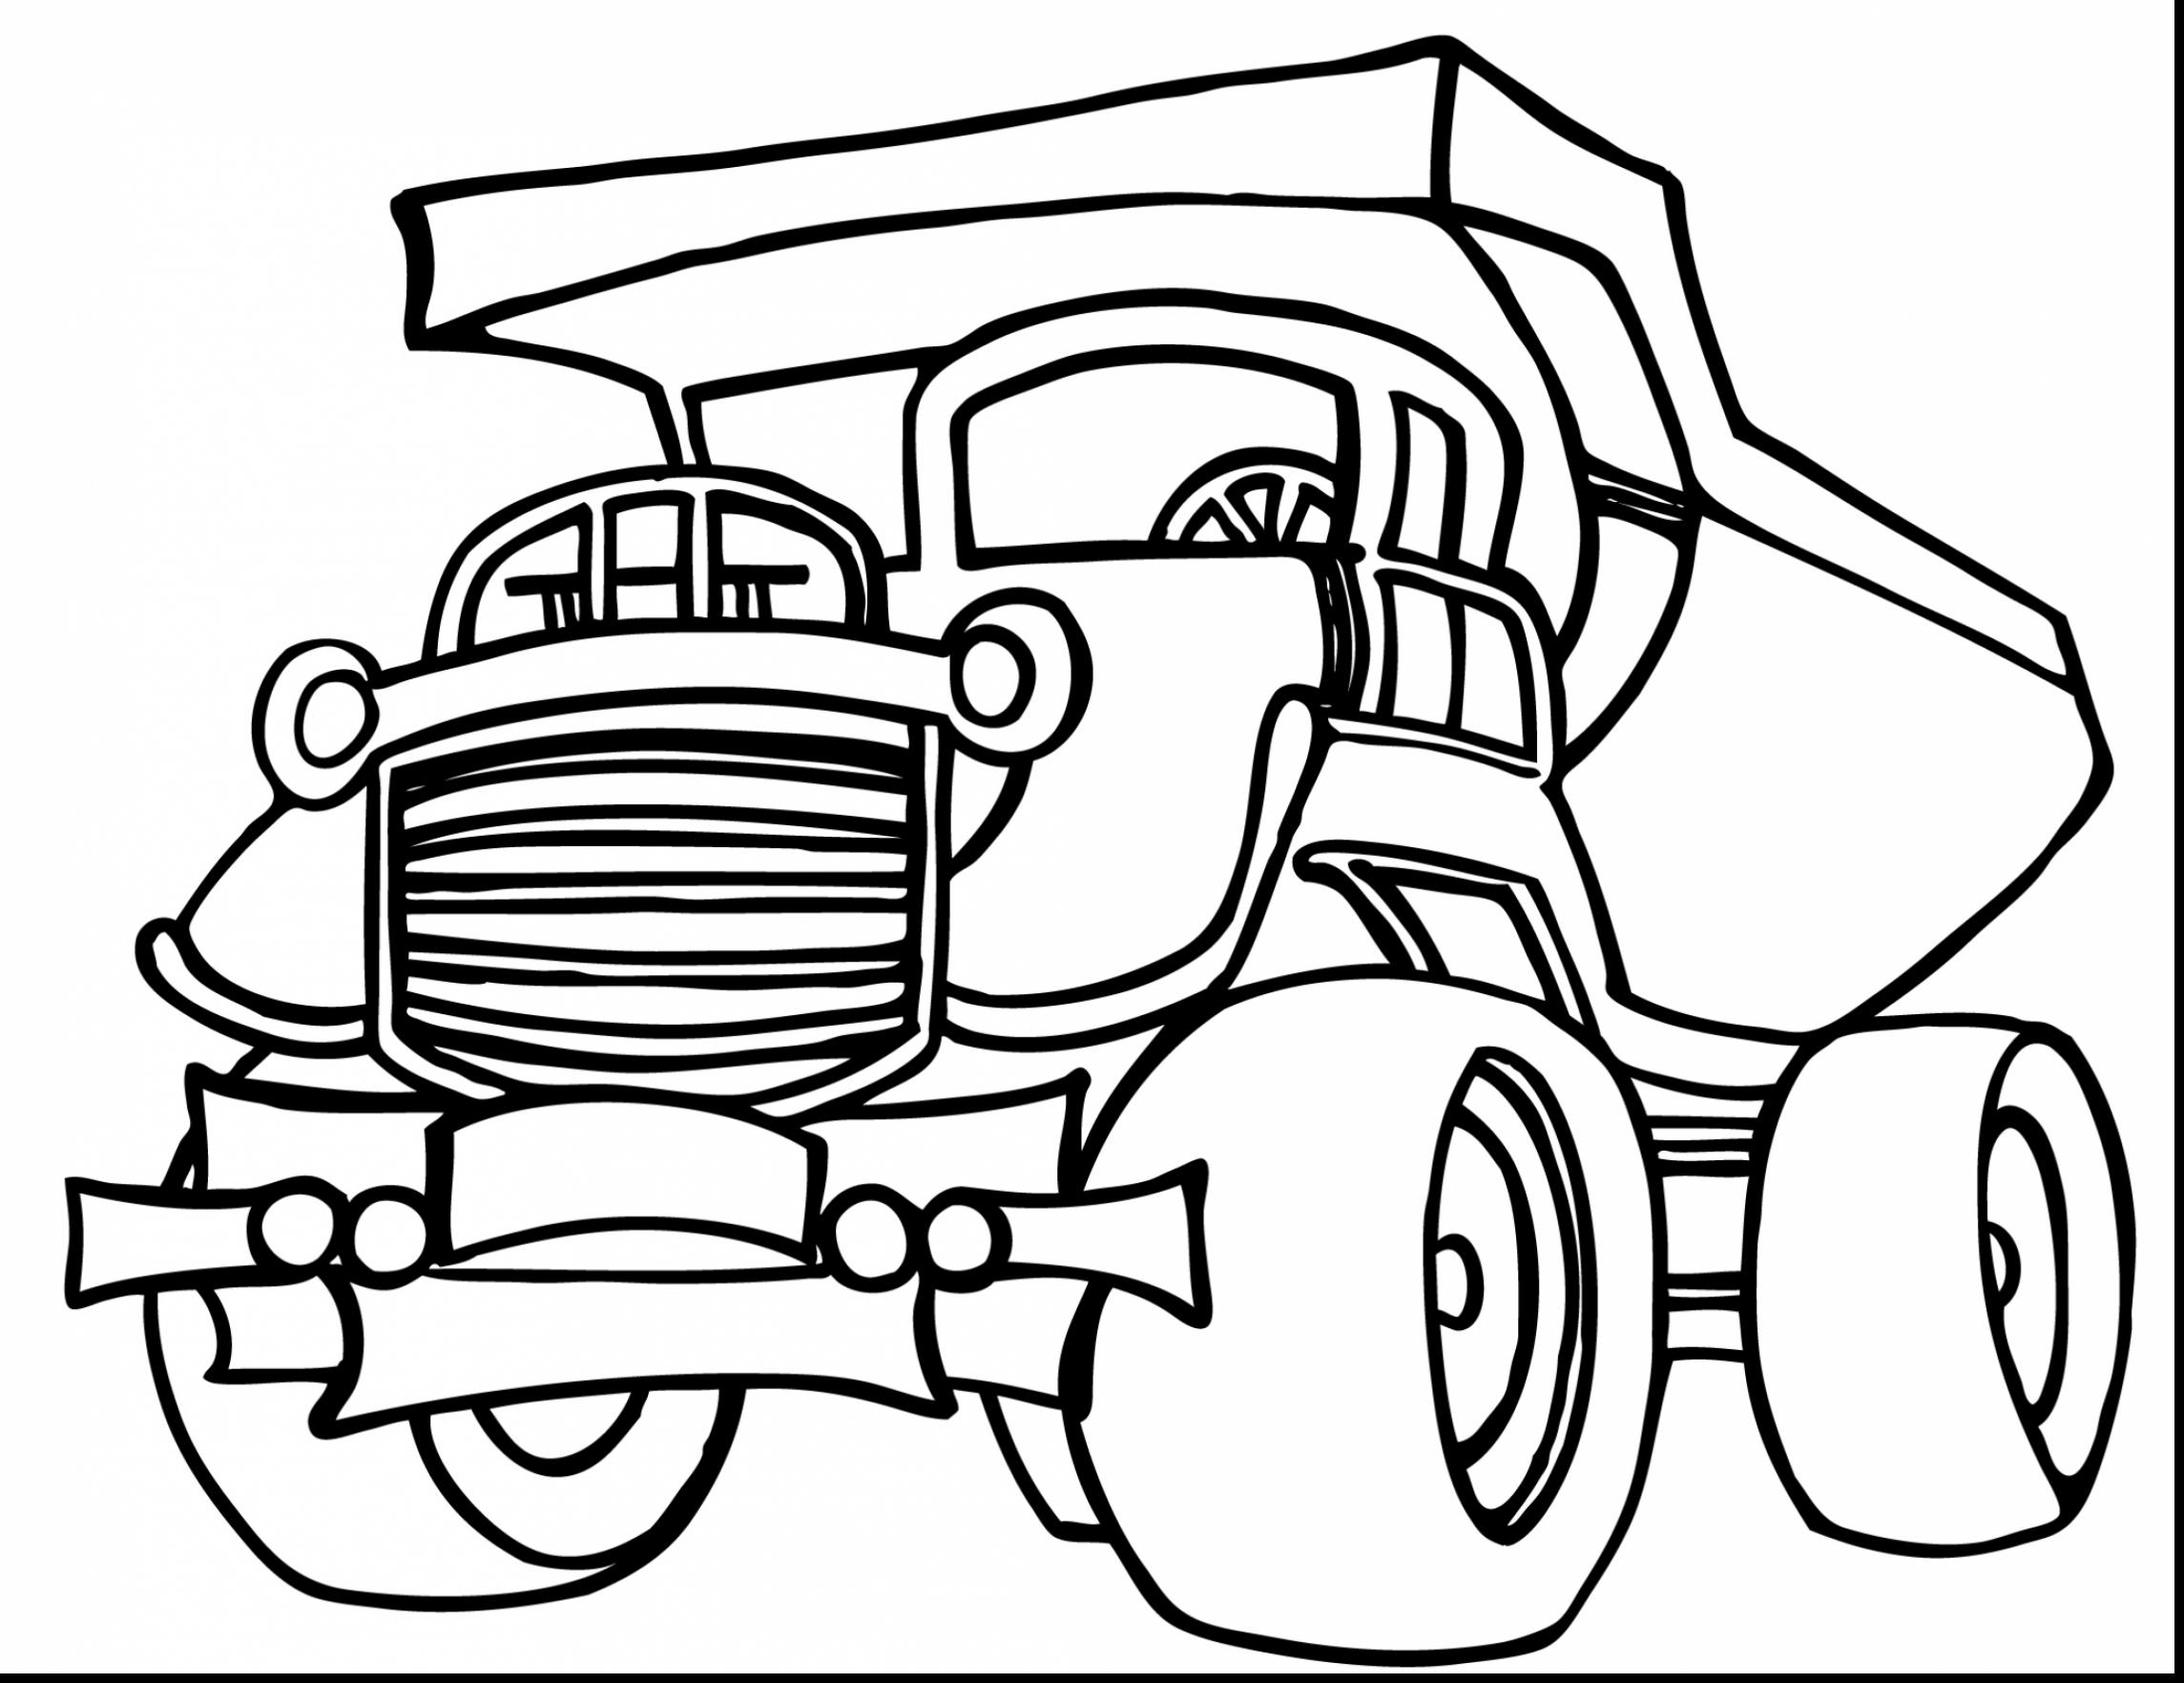 2289x1764 Good Lifted Chevy Truck Coloring Pages With Truck Coloring Page